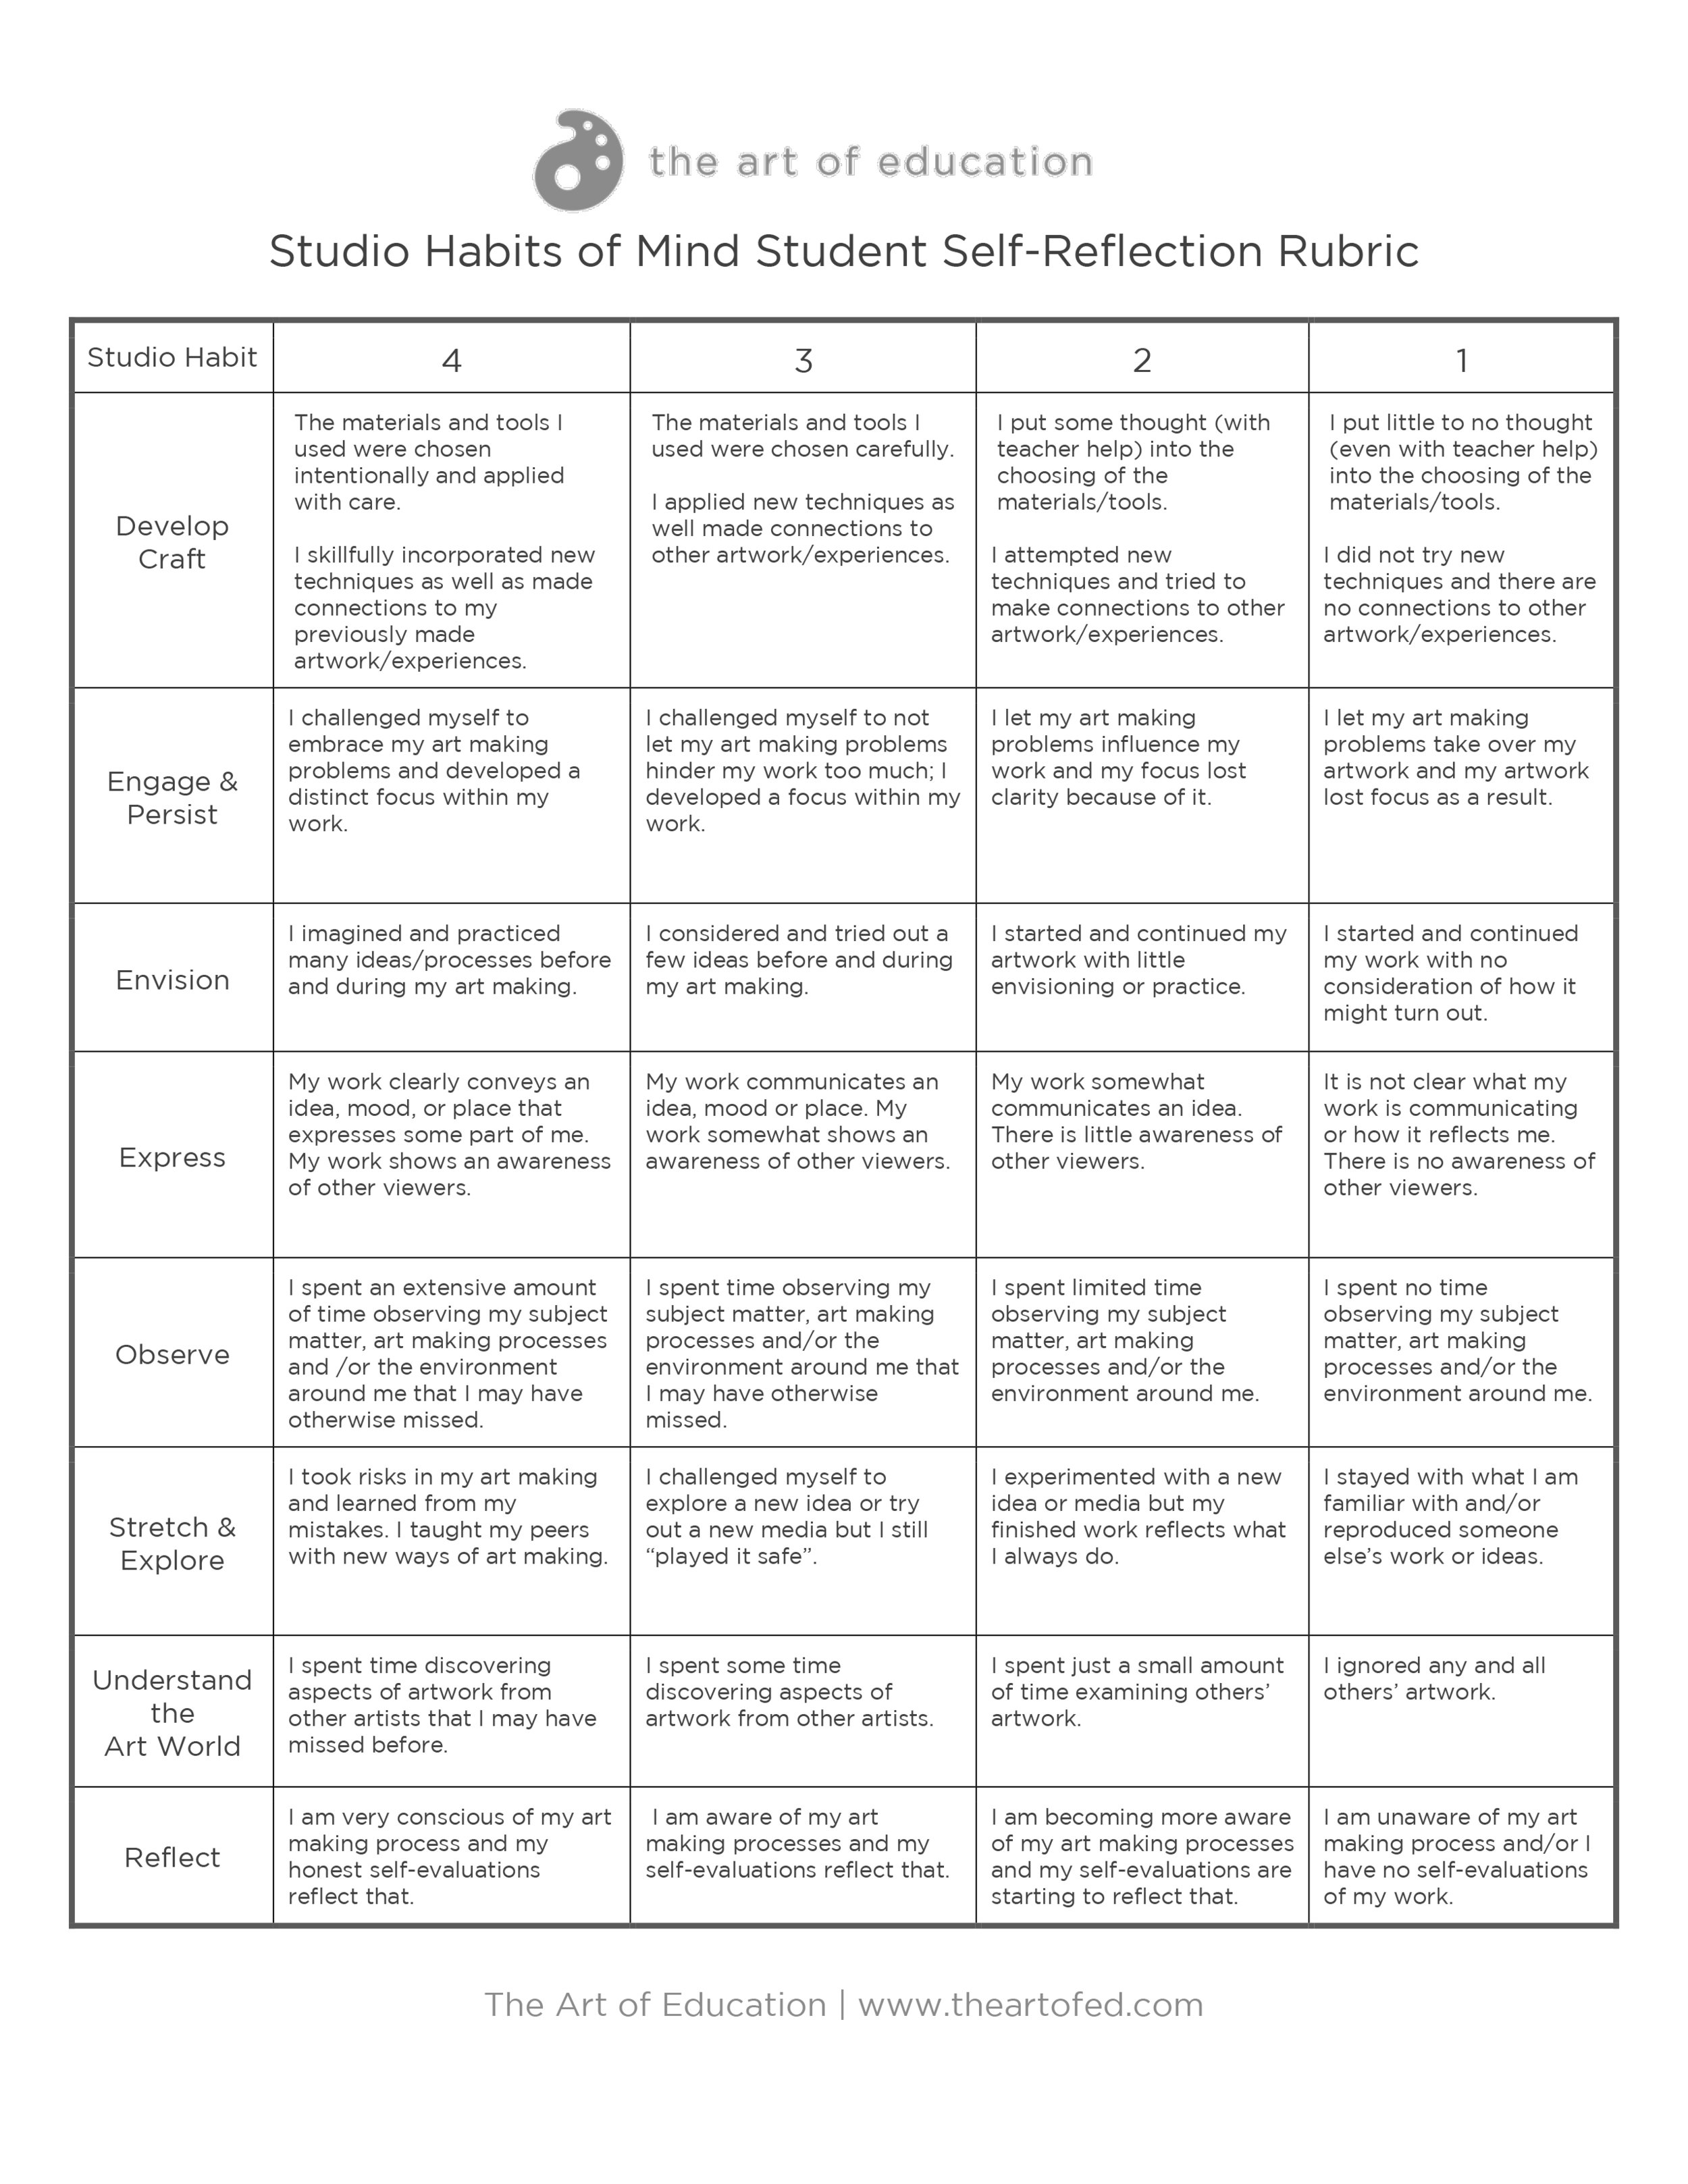 Assessment_Studio Habits Rubric